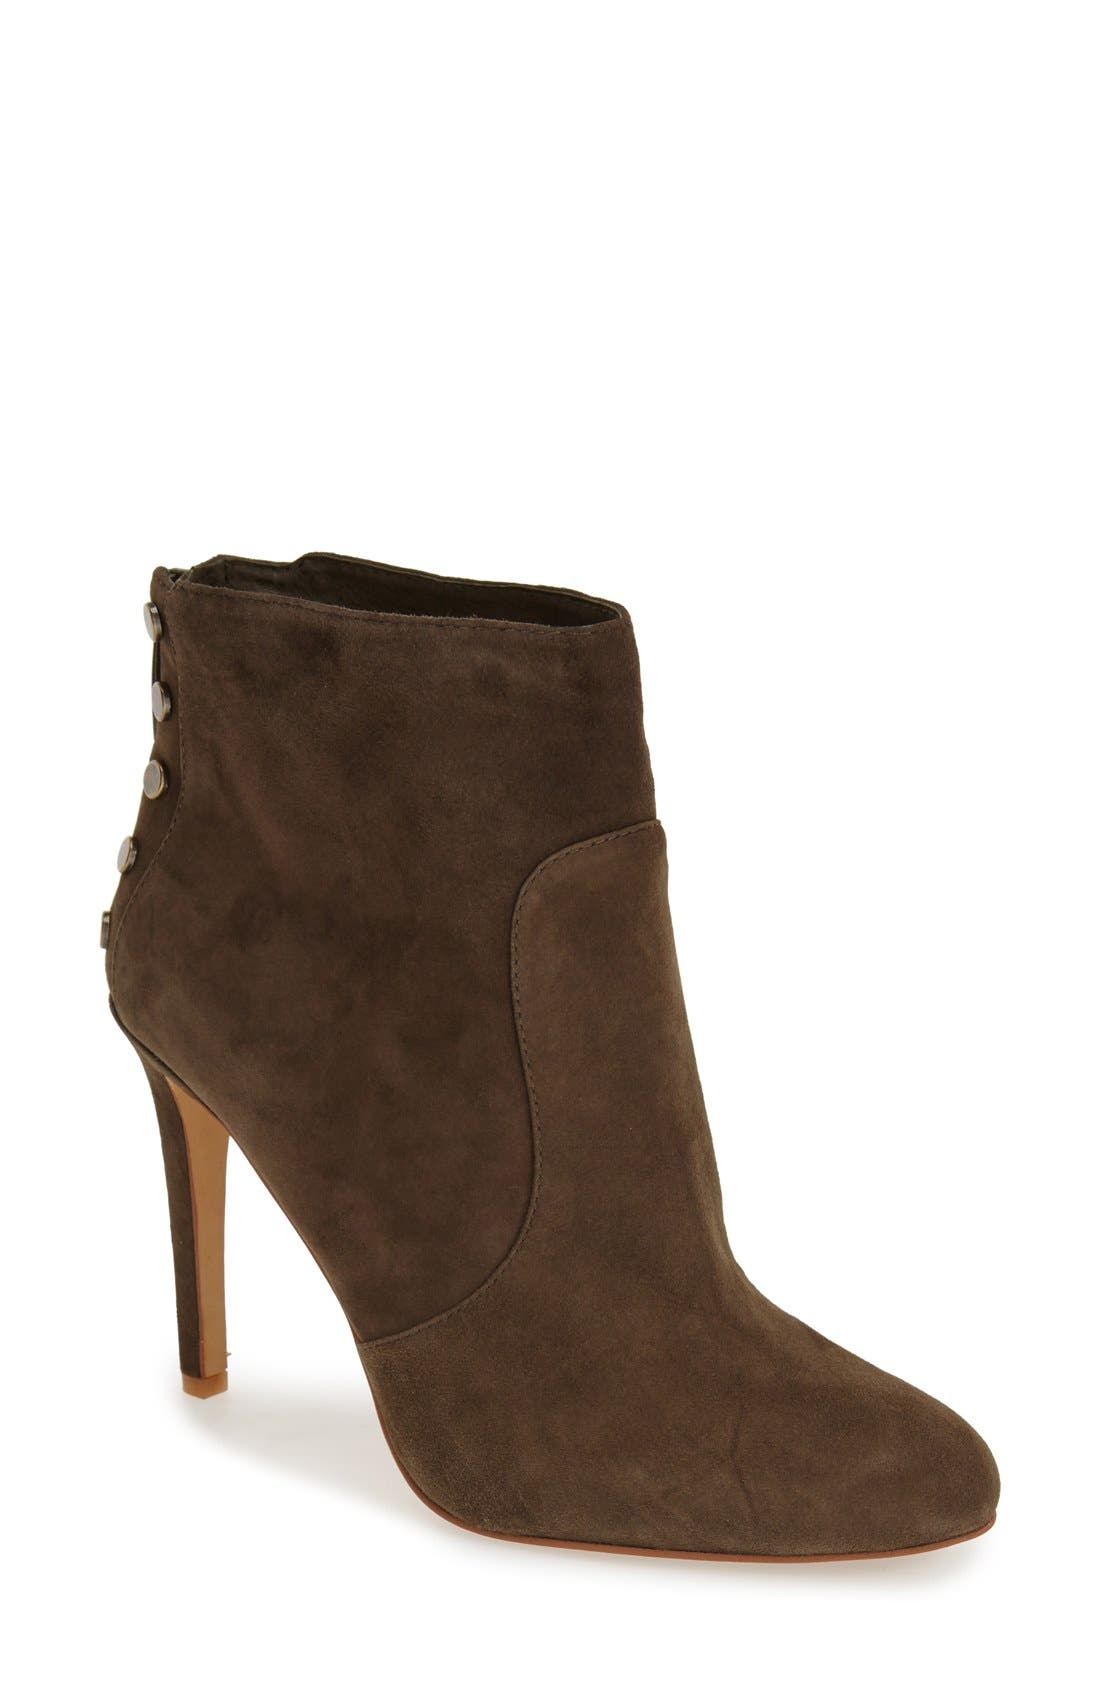 Alternate Image 1 Selected - Vince Camuto 'Bustell' Studded Bootie (Women)